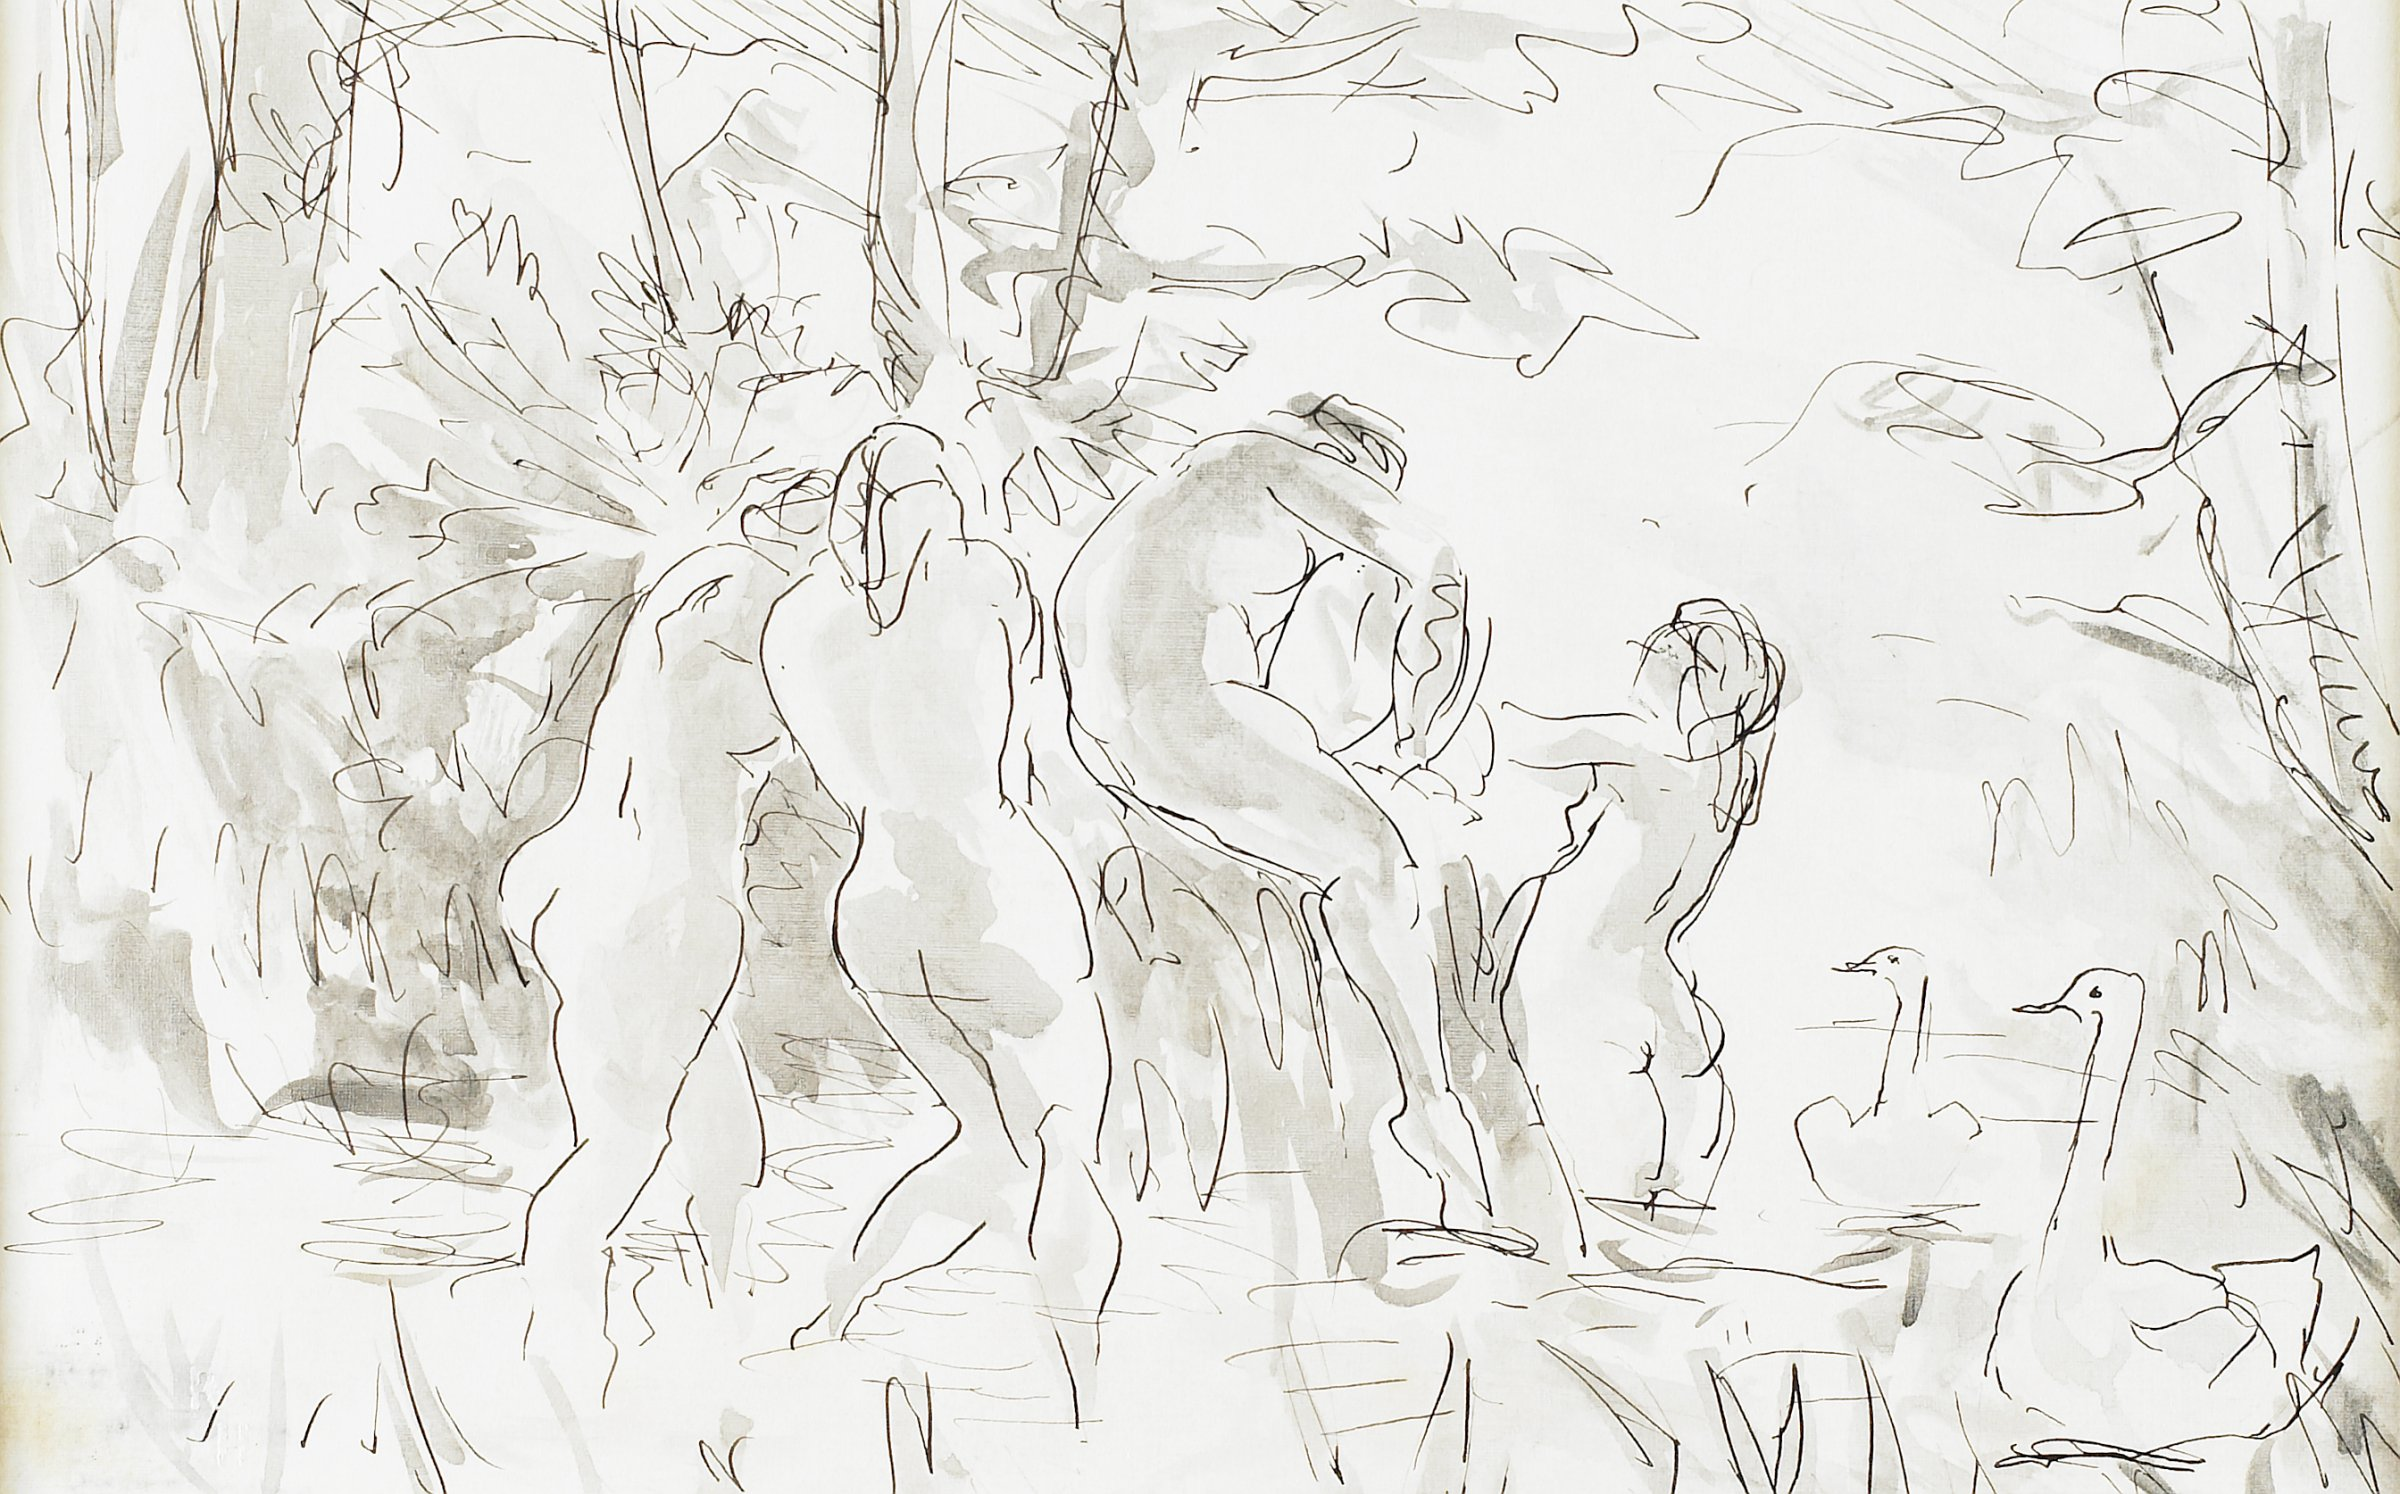 Four Female Bathers, Robert Henri, pen and black ink and brush and gray wash on wove paper